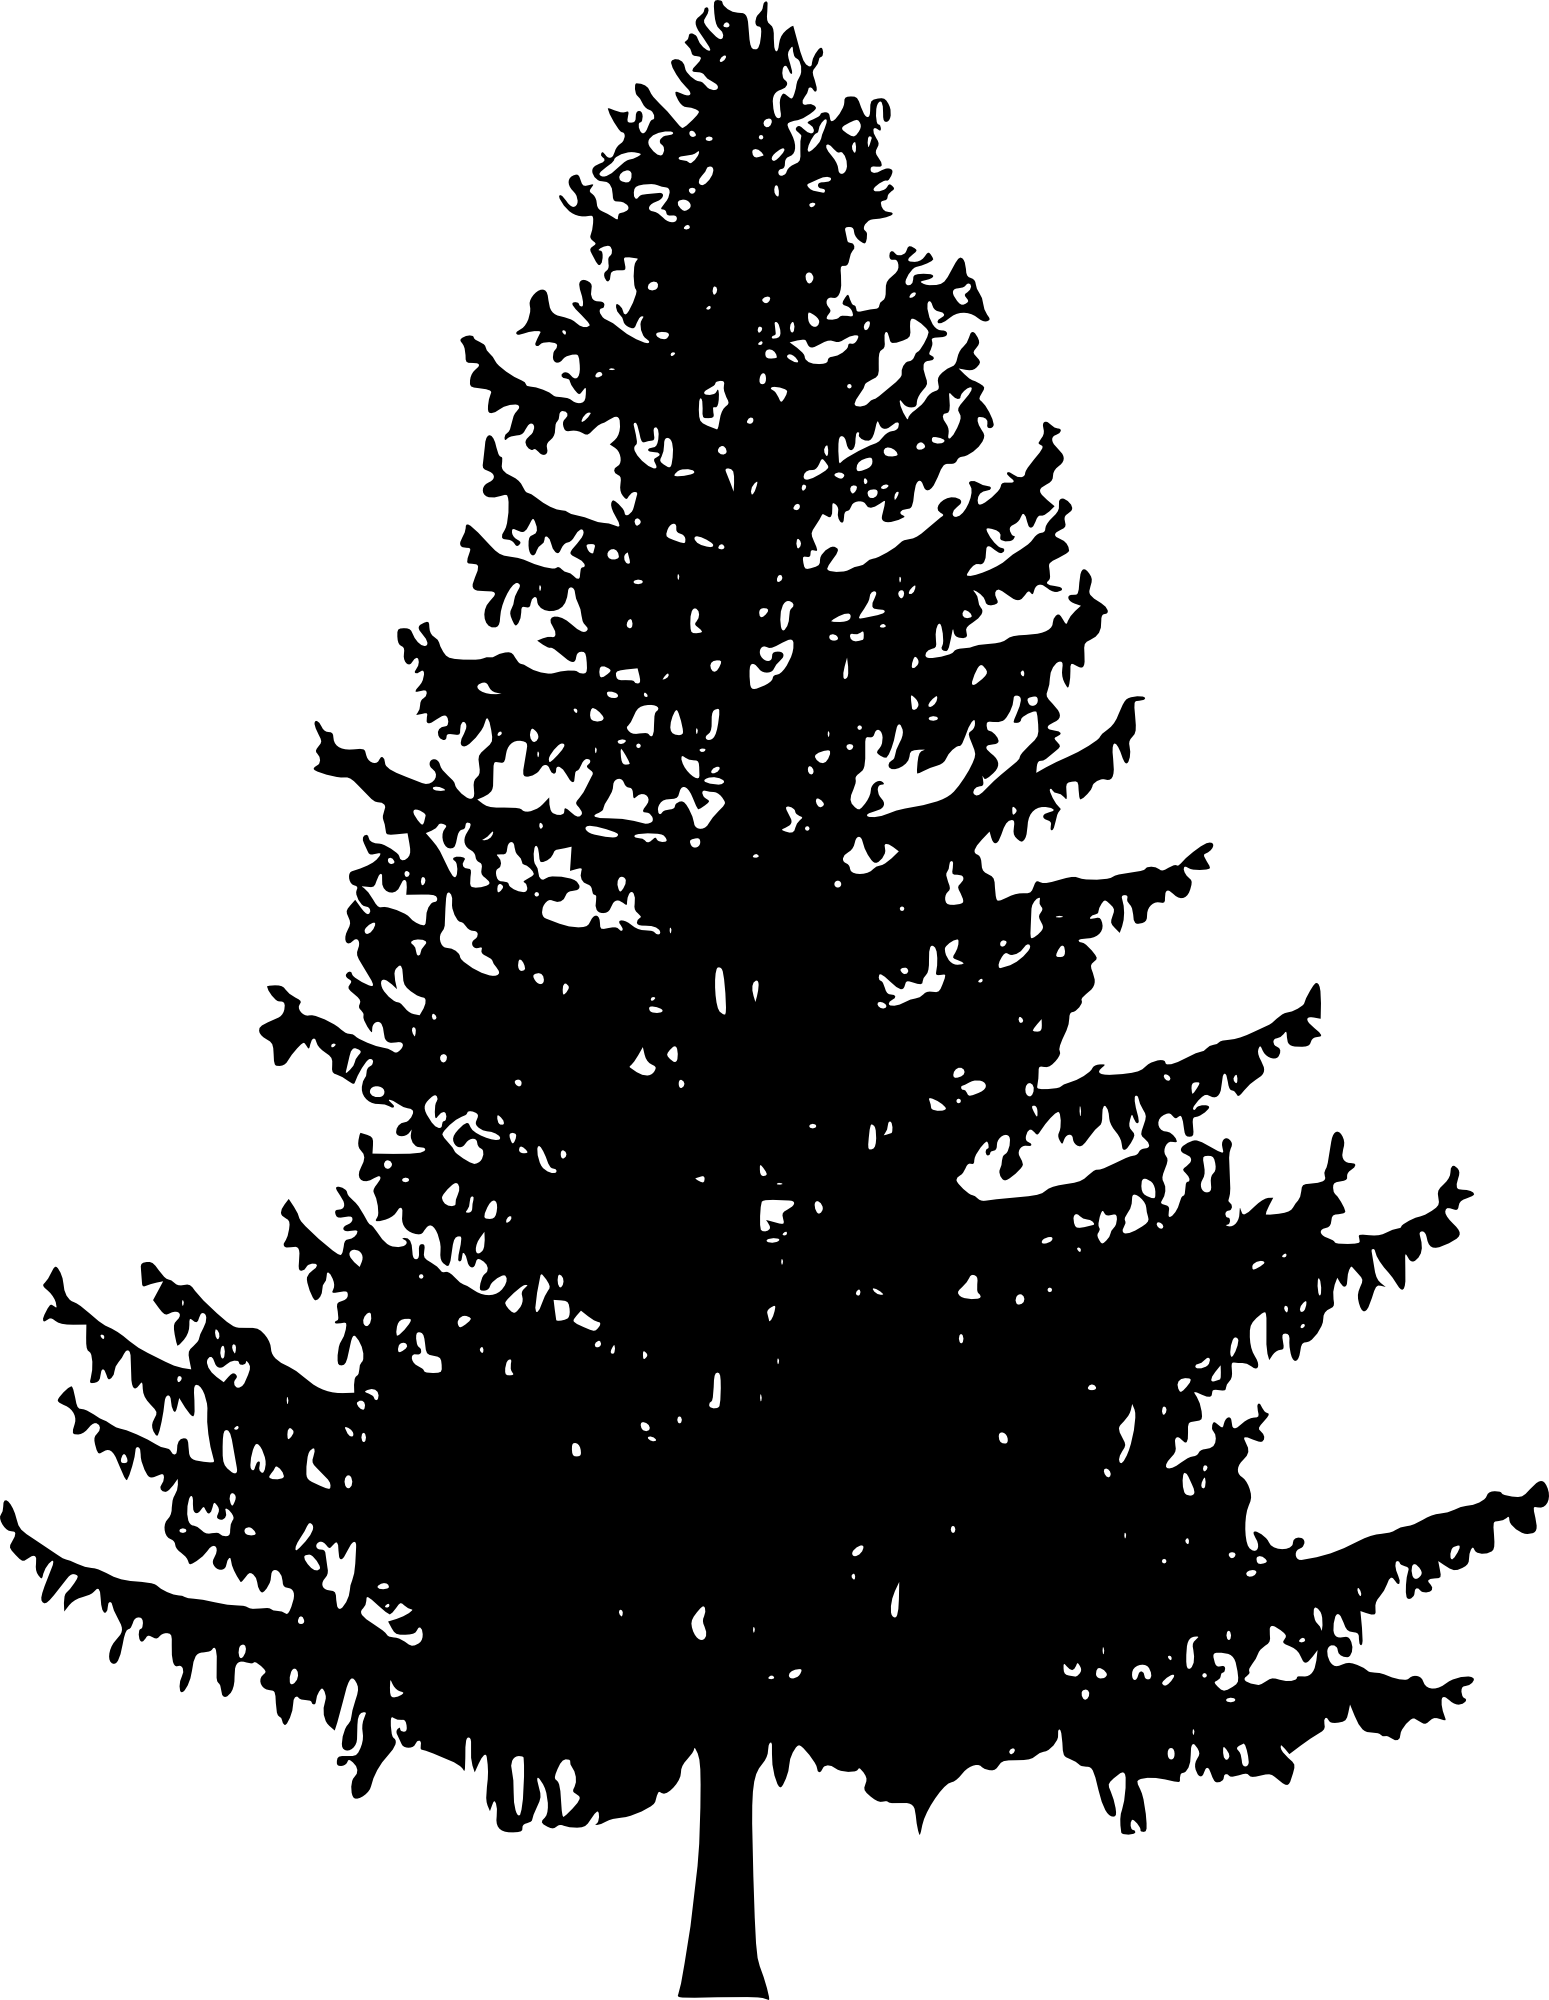 10 Pine Tree Silhouette (PNG Transparent).